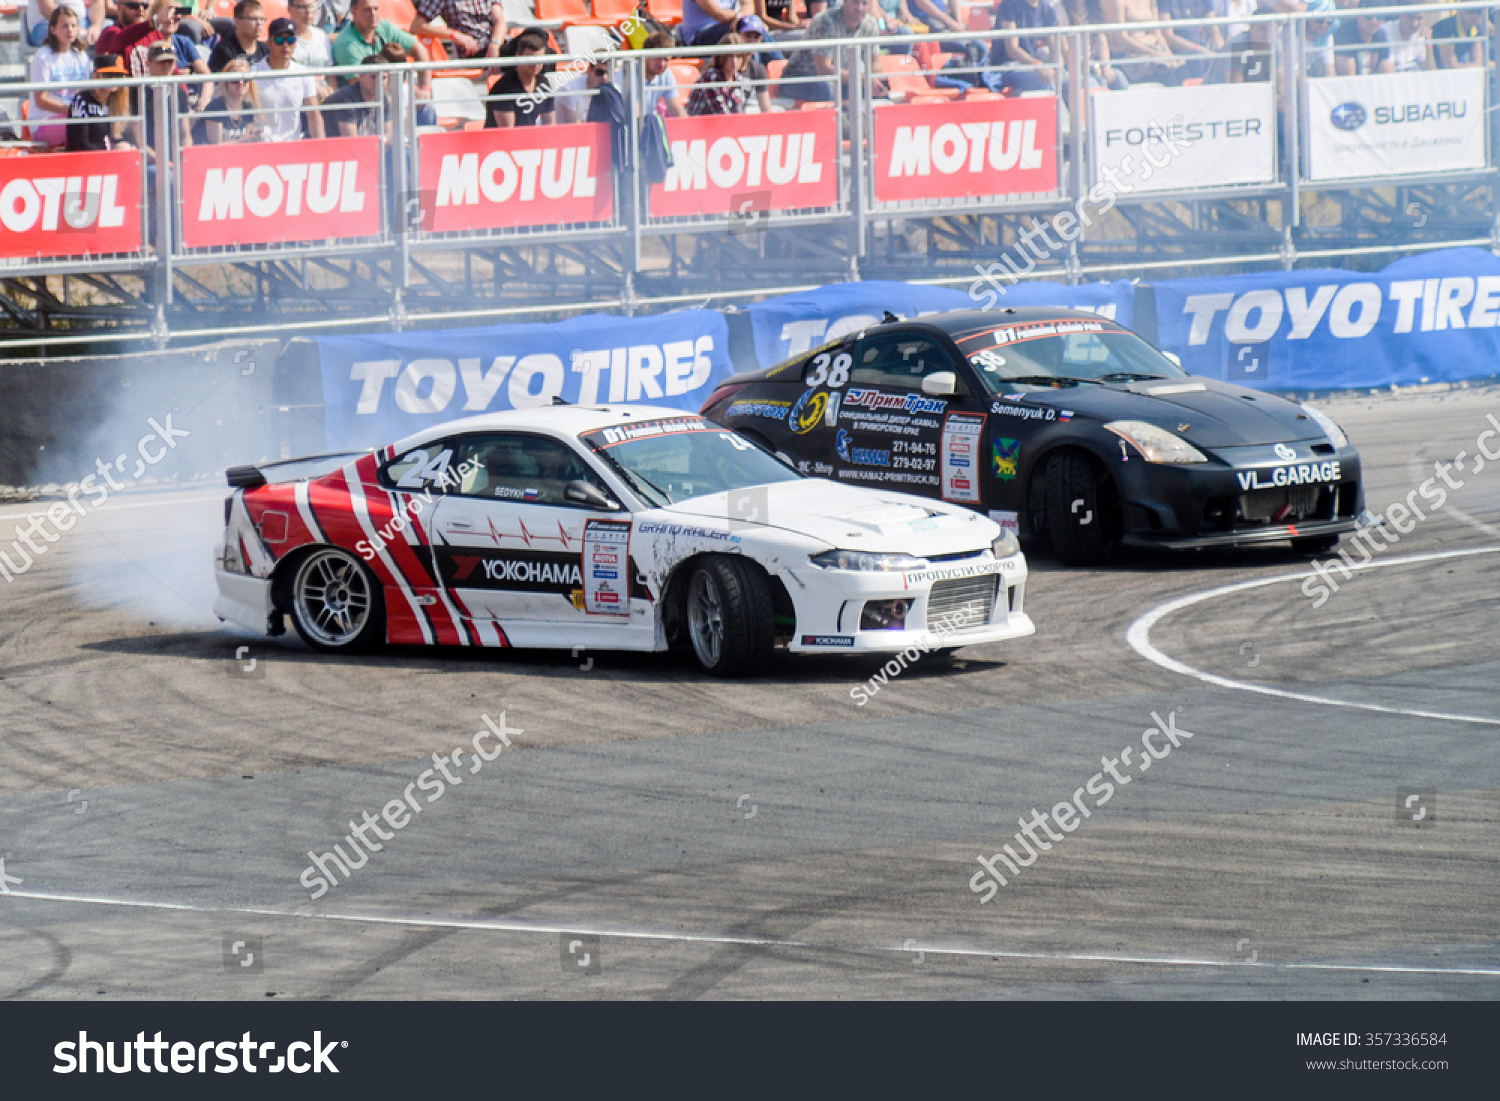 ARTEM RUSSIAN SEPTEMBER 20 car battles in Asia Pacific D1 Primring Grand Prix 2015 Russian Drift Series on September 20 2015